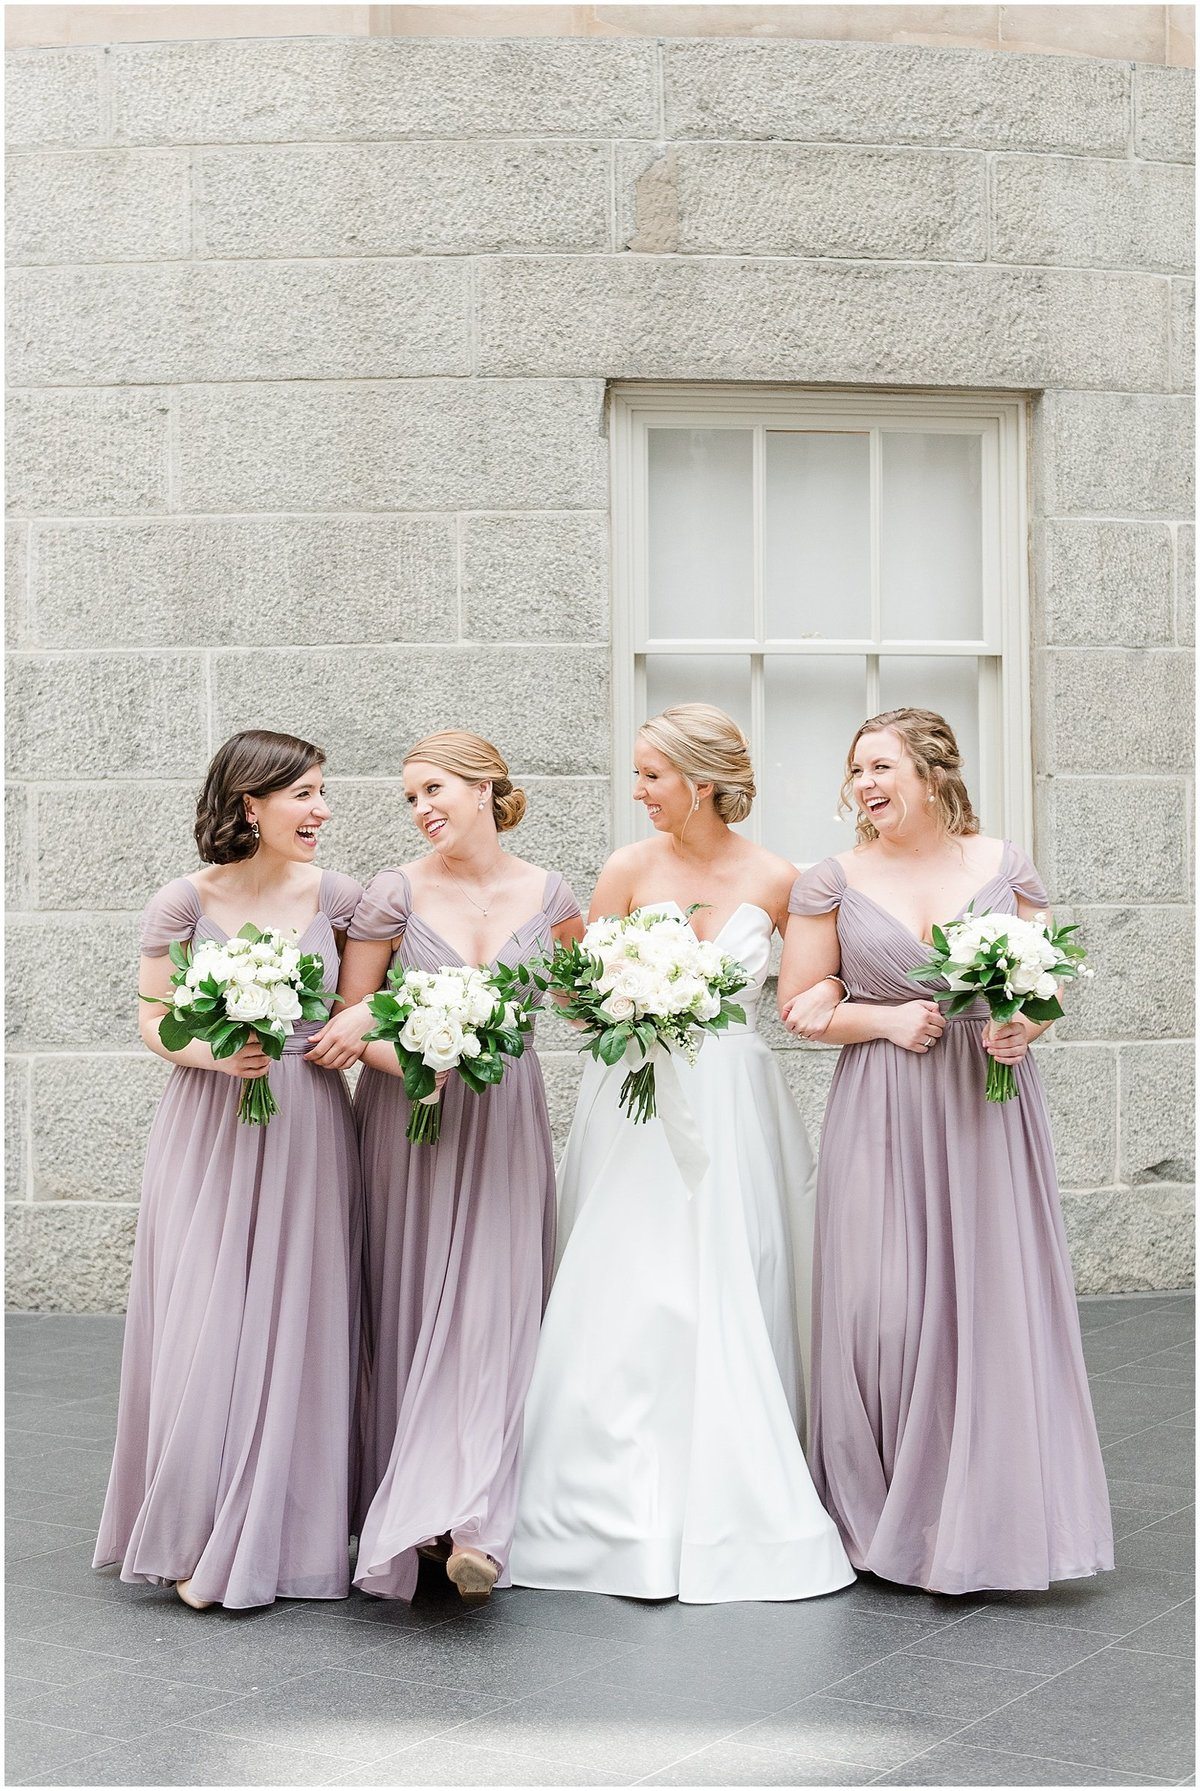 national-portrait-gallery-wedding-photo-bridesmaid-dress-wedding-photo